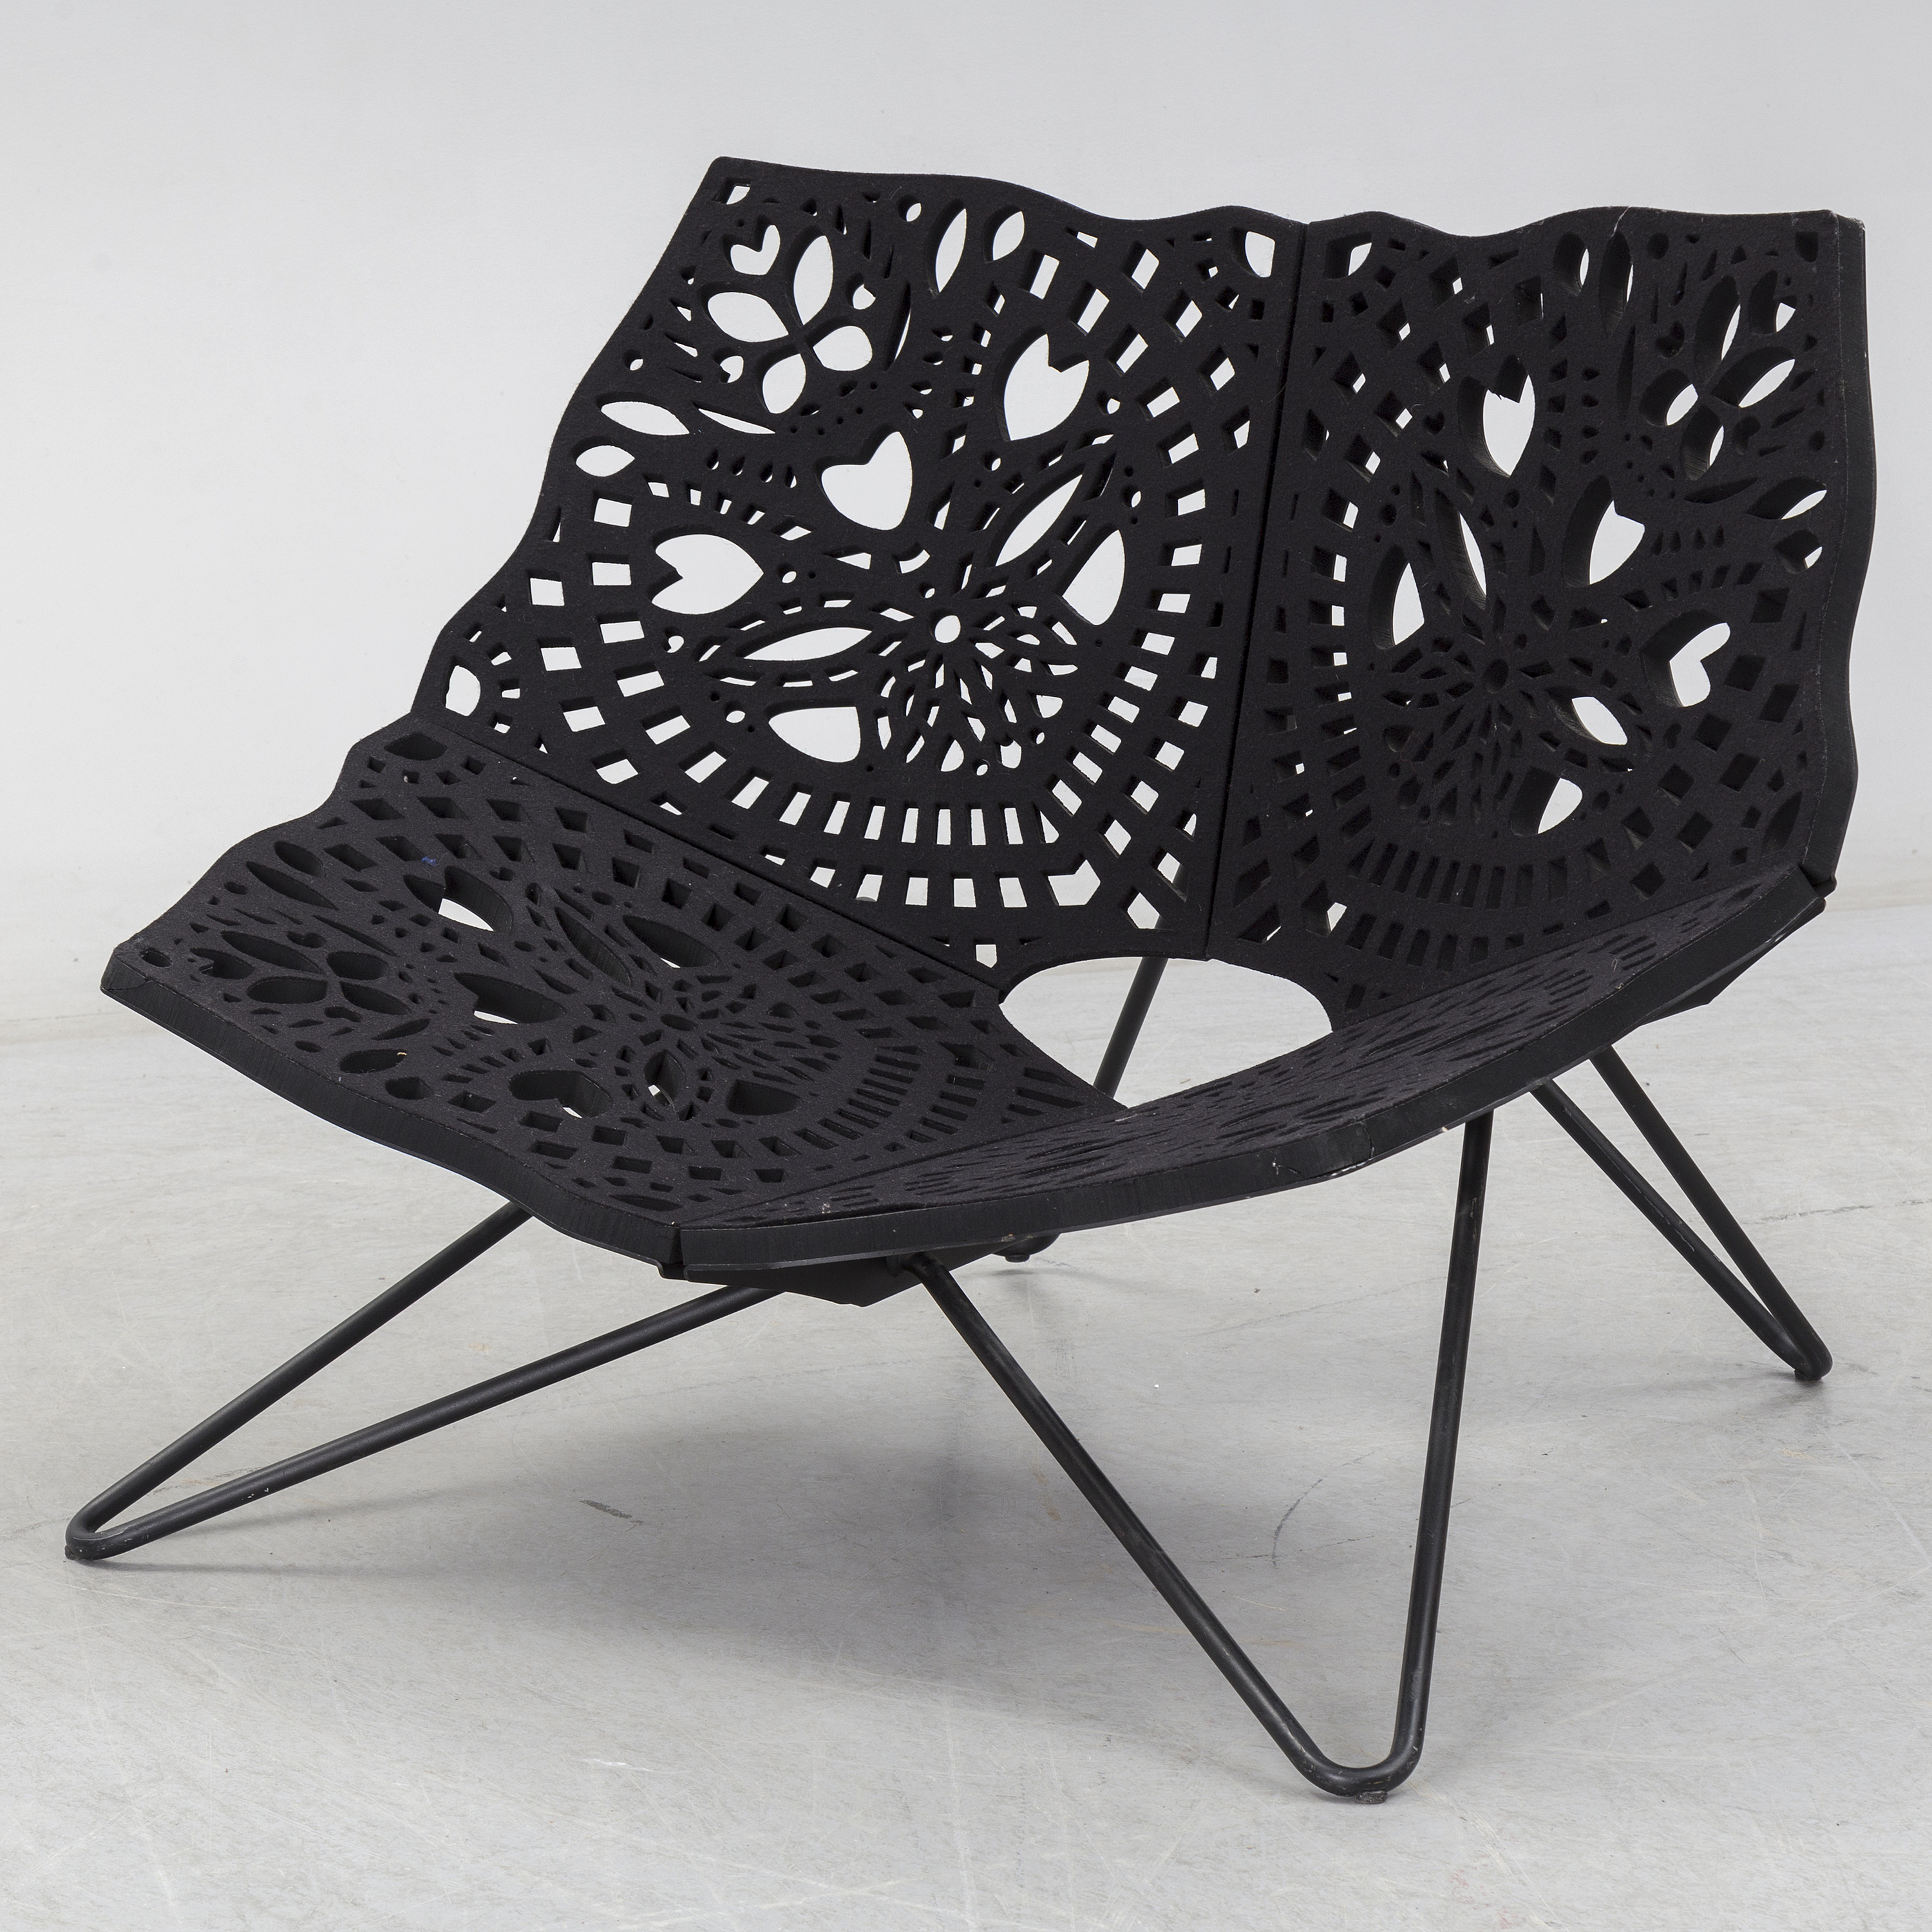 Superb An Easy Chair Prince Chair By Louise Campbell For Hay Dailytribune Chair Design For Home Dailytribuneorg